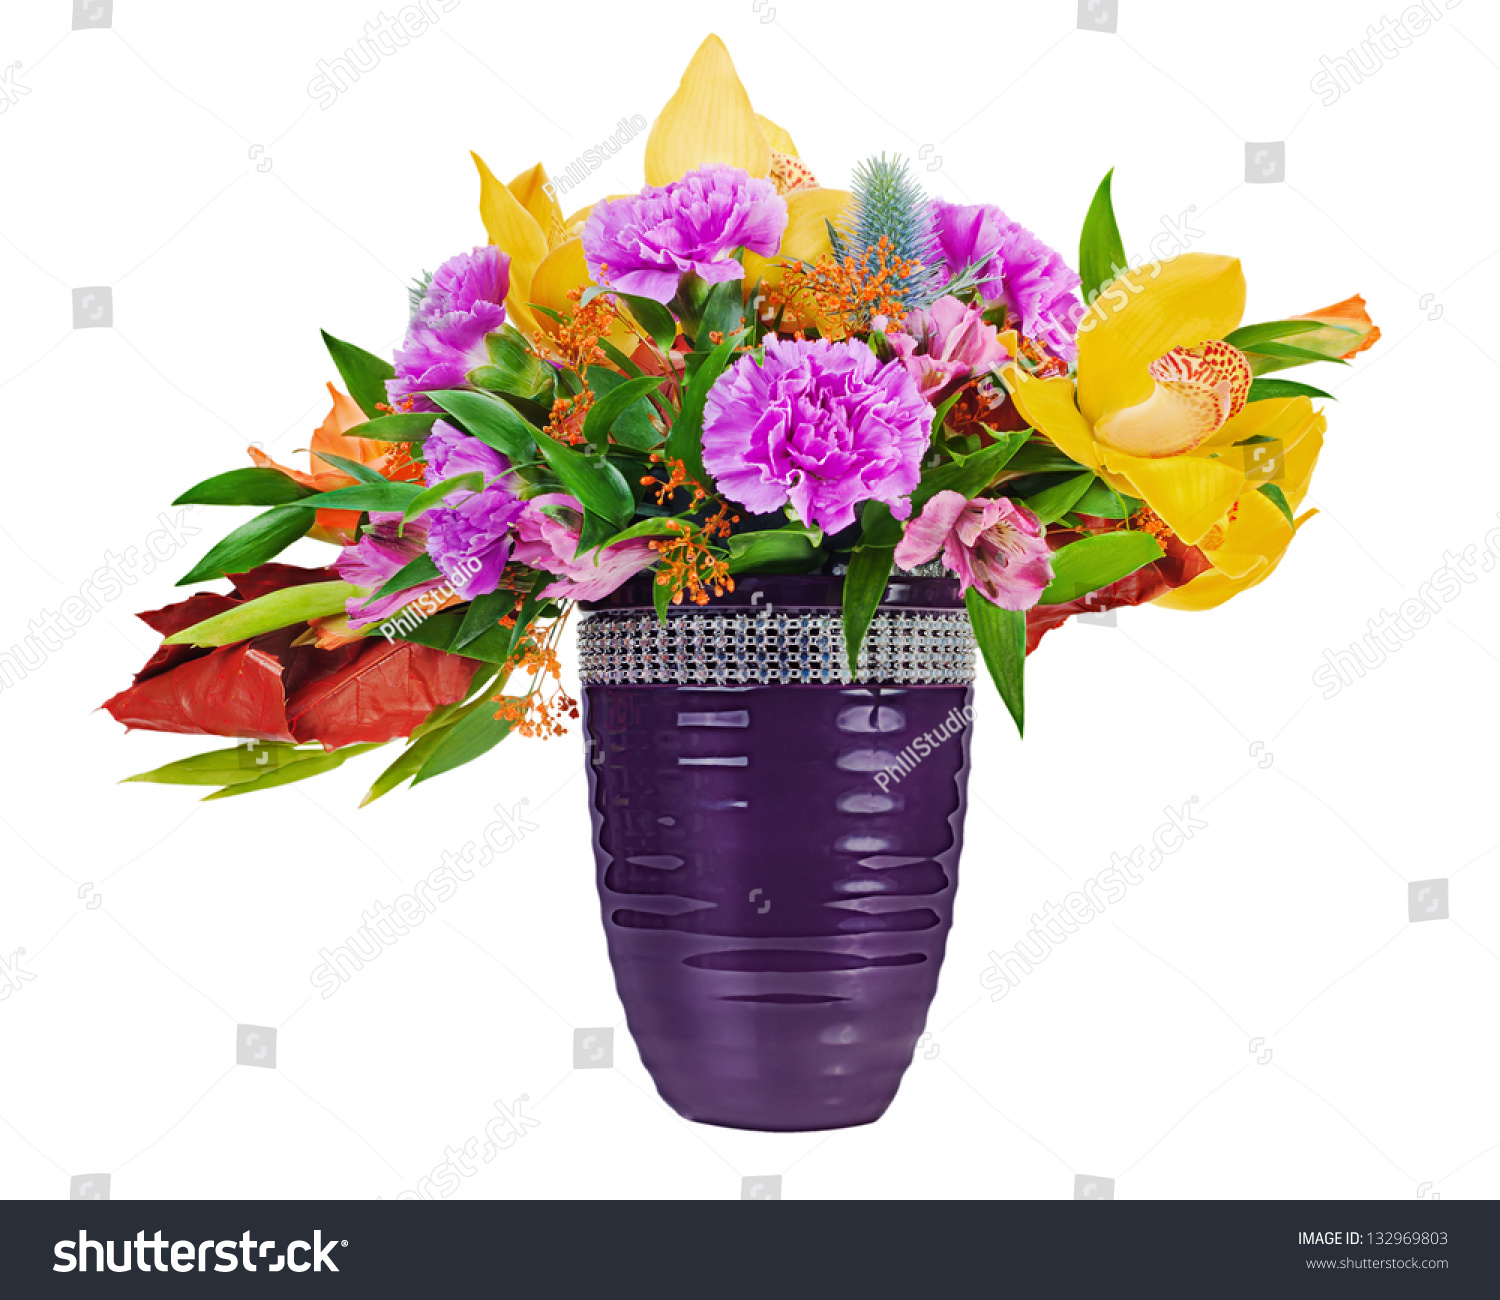 Floral bouquet orchids gladioluses carnation arrangement stock floral bouquet of orchids gladioluses and carnation arrangement centerpiece in blue vase isolated on white reviewsmspy